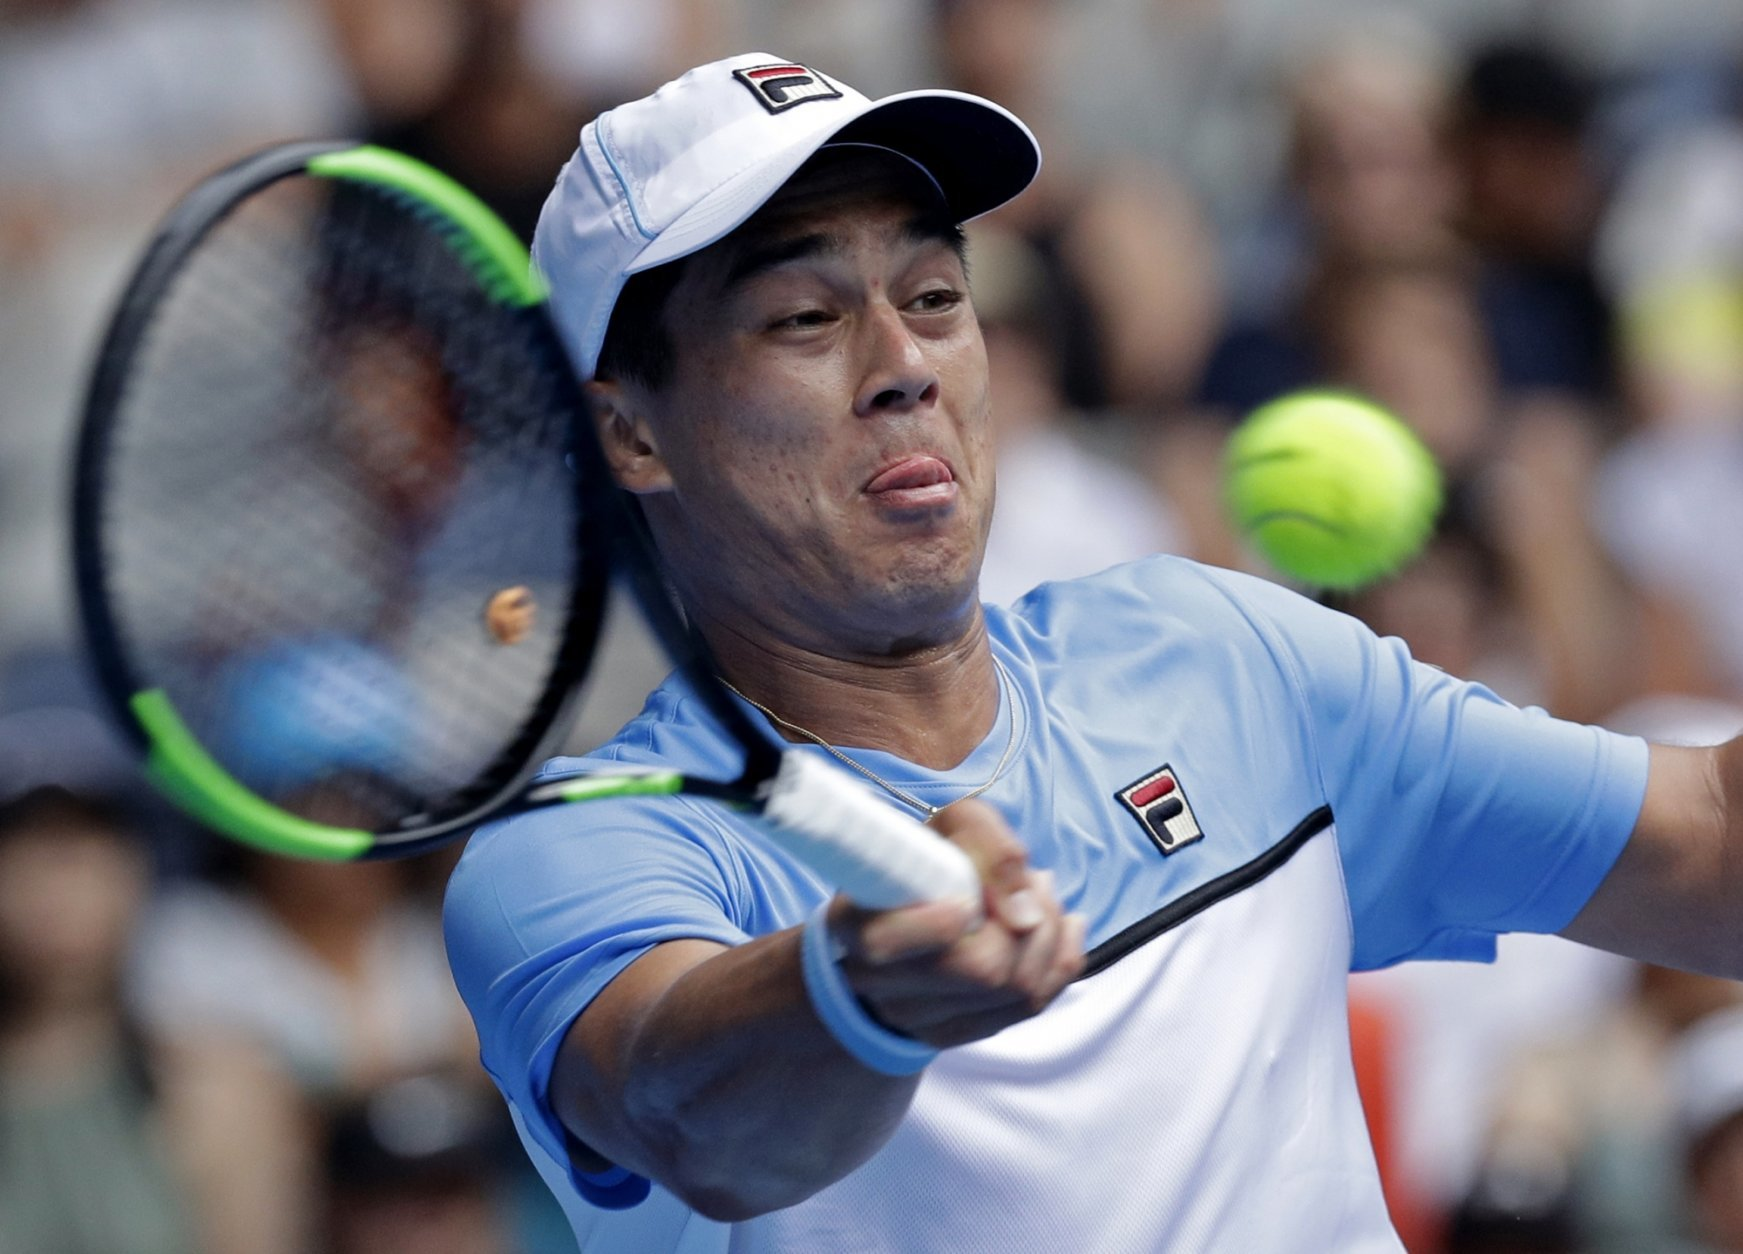 United States' Mackenzie McDonald hits a forehand return to Croatia's Marin Cilic during their second round match at the Australian Open tennis championships in Melbourne, Australia, Wednesday, Jan. 16, 2019. (AP Photo/Kin Cheung)